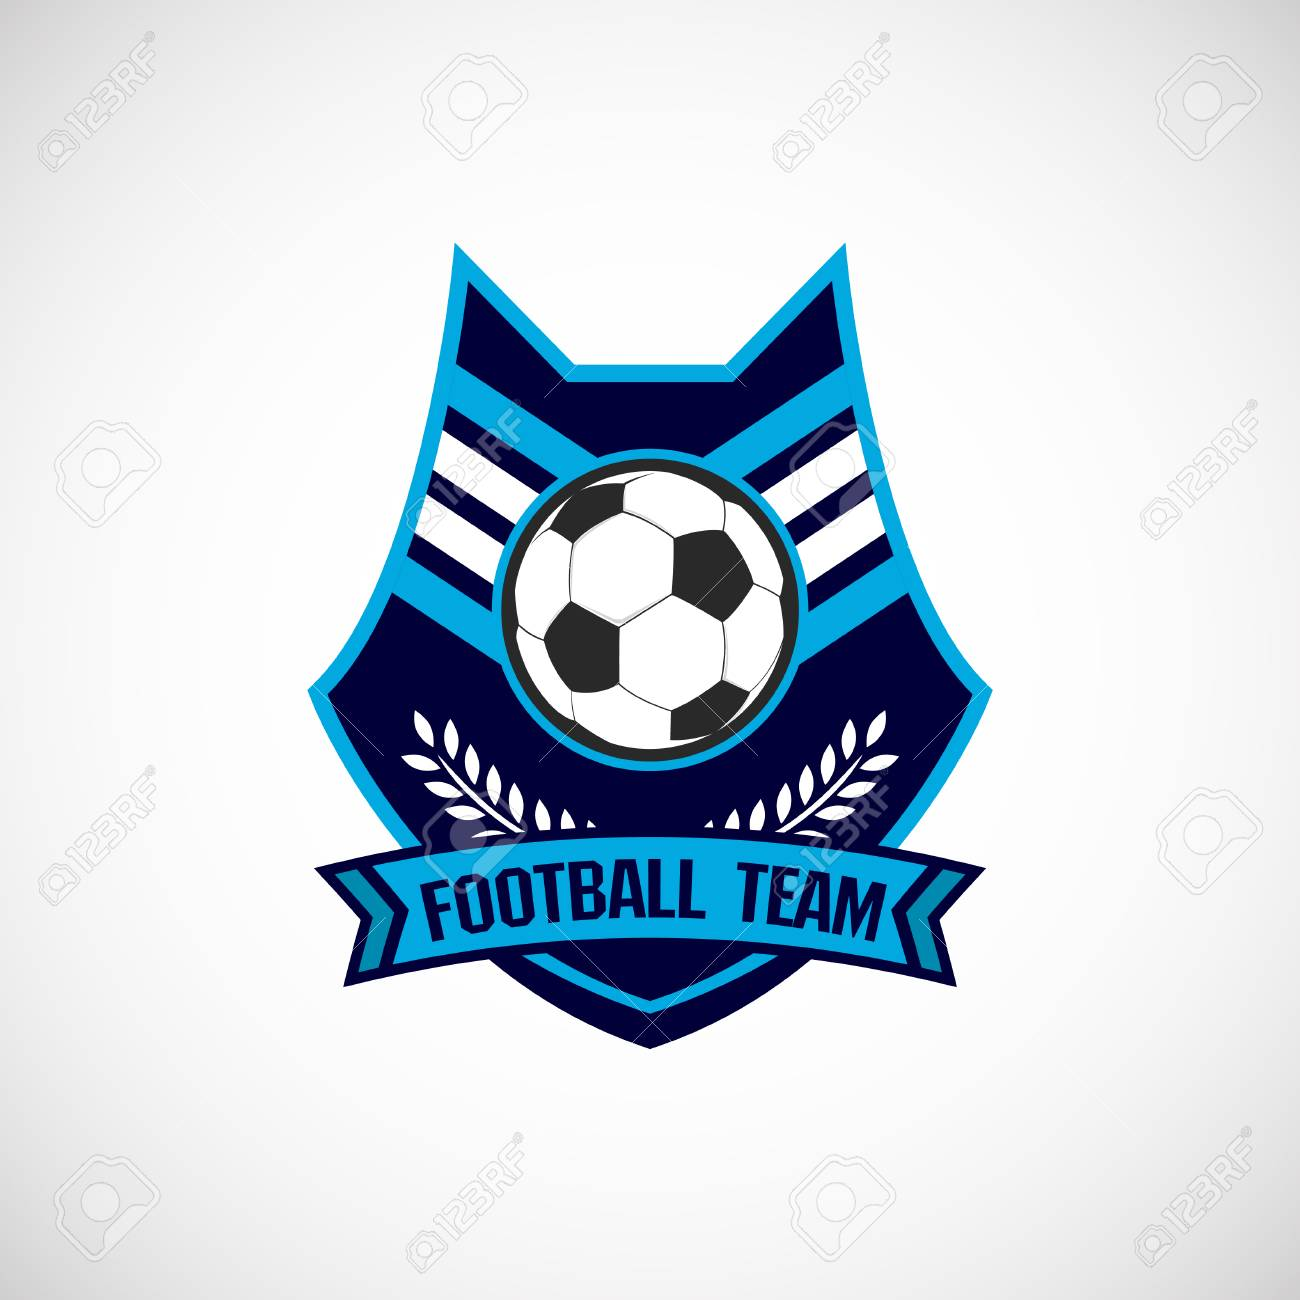 Soccer Football Badge Logo Design Templates Sport Team Identity Royalty Free Cliparts Vectors And Stock Illustration Image 120477377